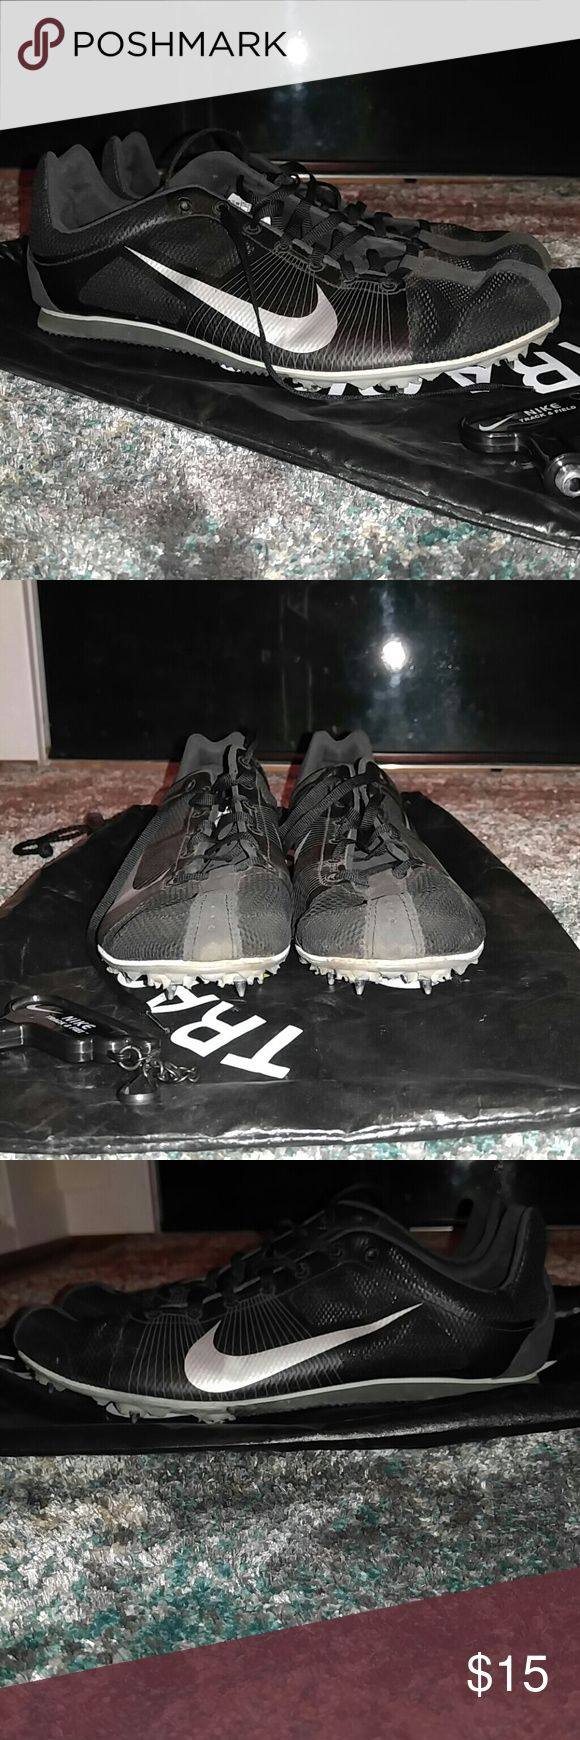 Nike Zoom Rival D Track Spike Shoes Nike track spikes in good condition. Only used for a season in high school. Spike wrench included. Nike Shoes Athletic Shoes